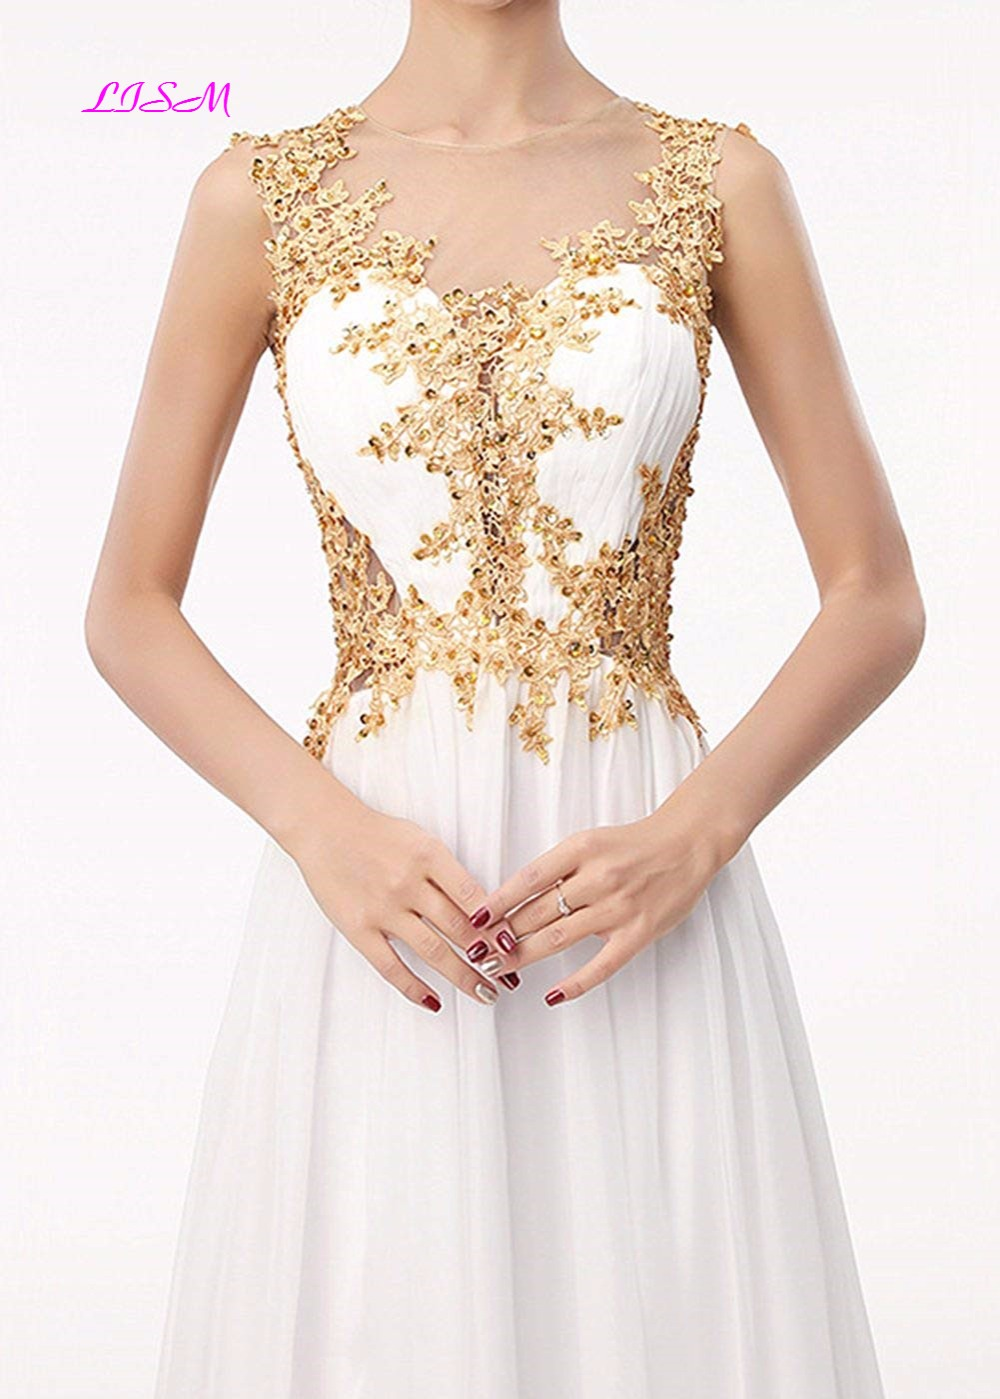 White A-Line Chiffon Evening Dresses Illusion O-Neck Gold Appliques Long Prom Party Gowns Elegant Sheer Back Formal Dress